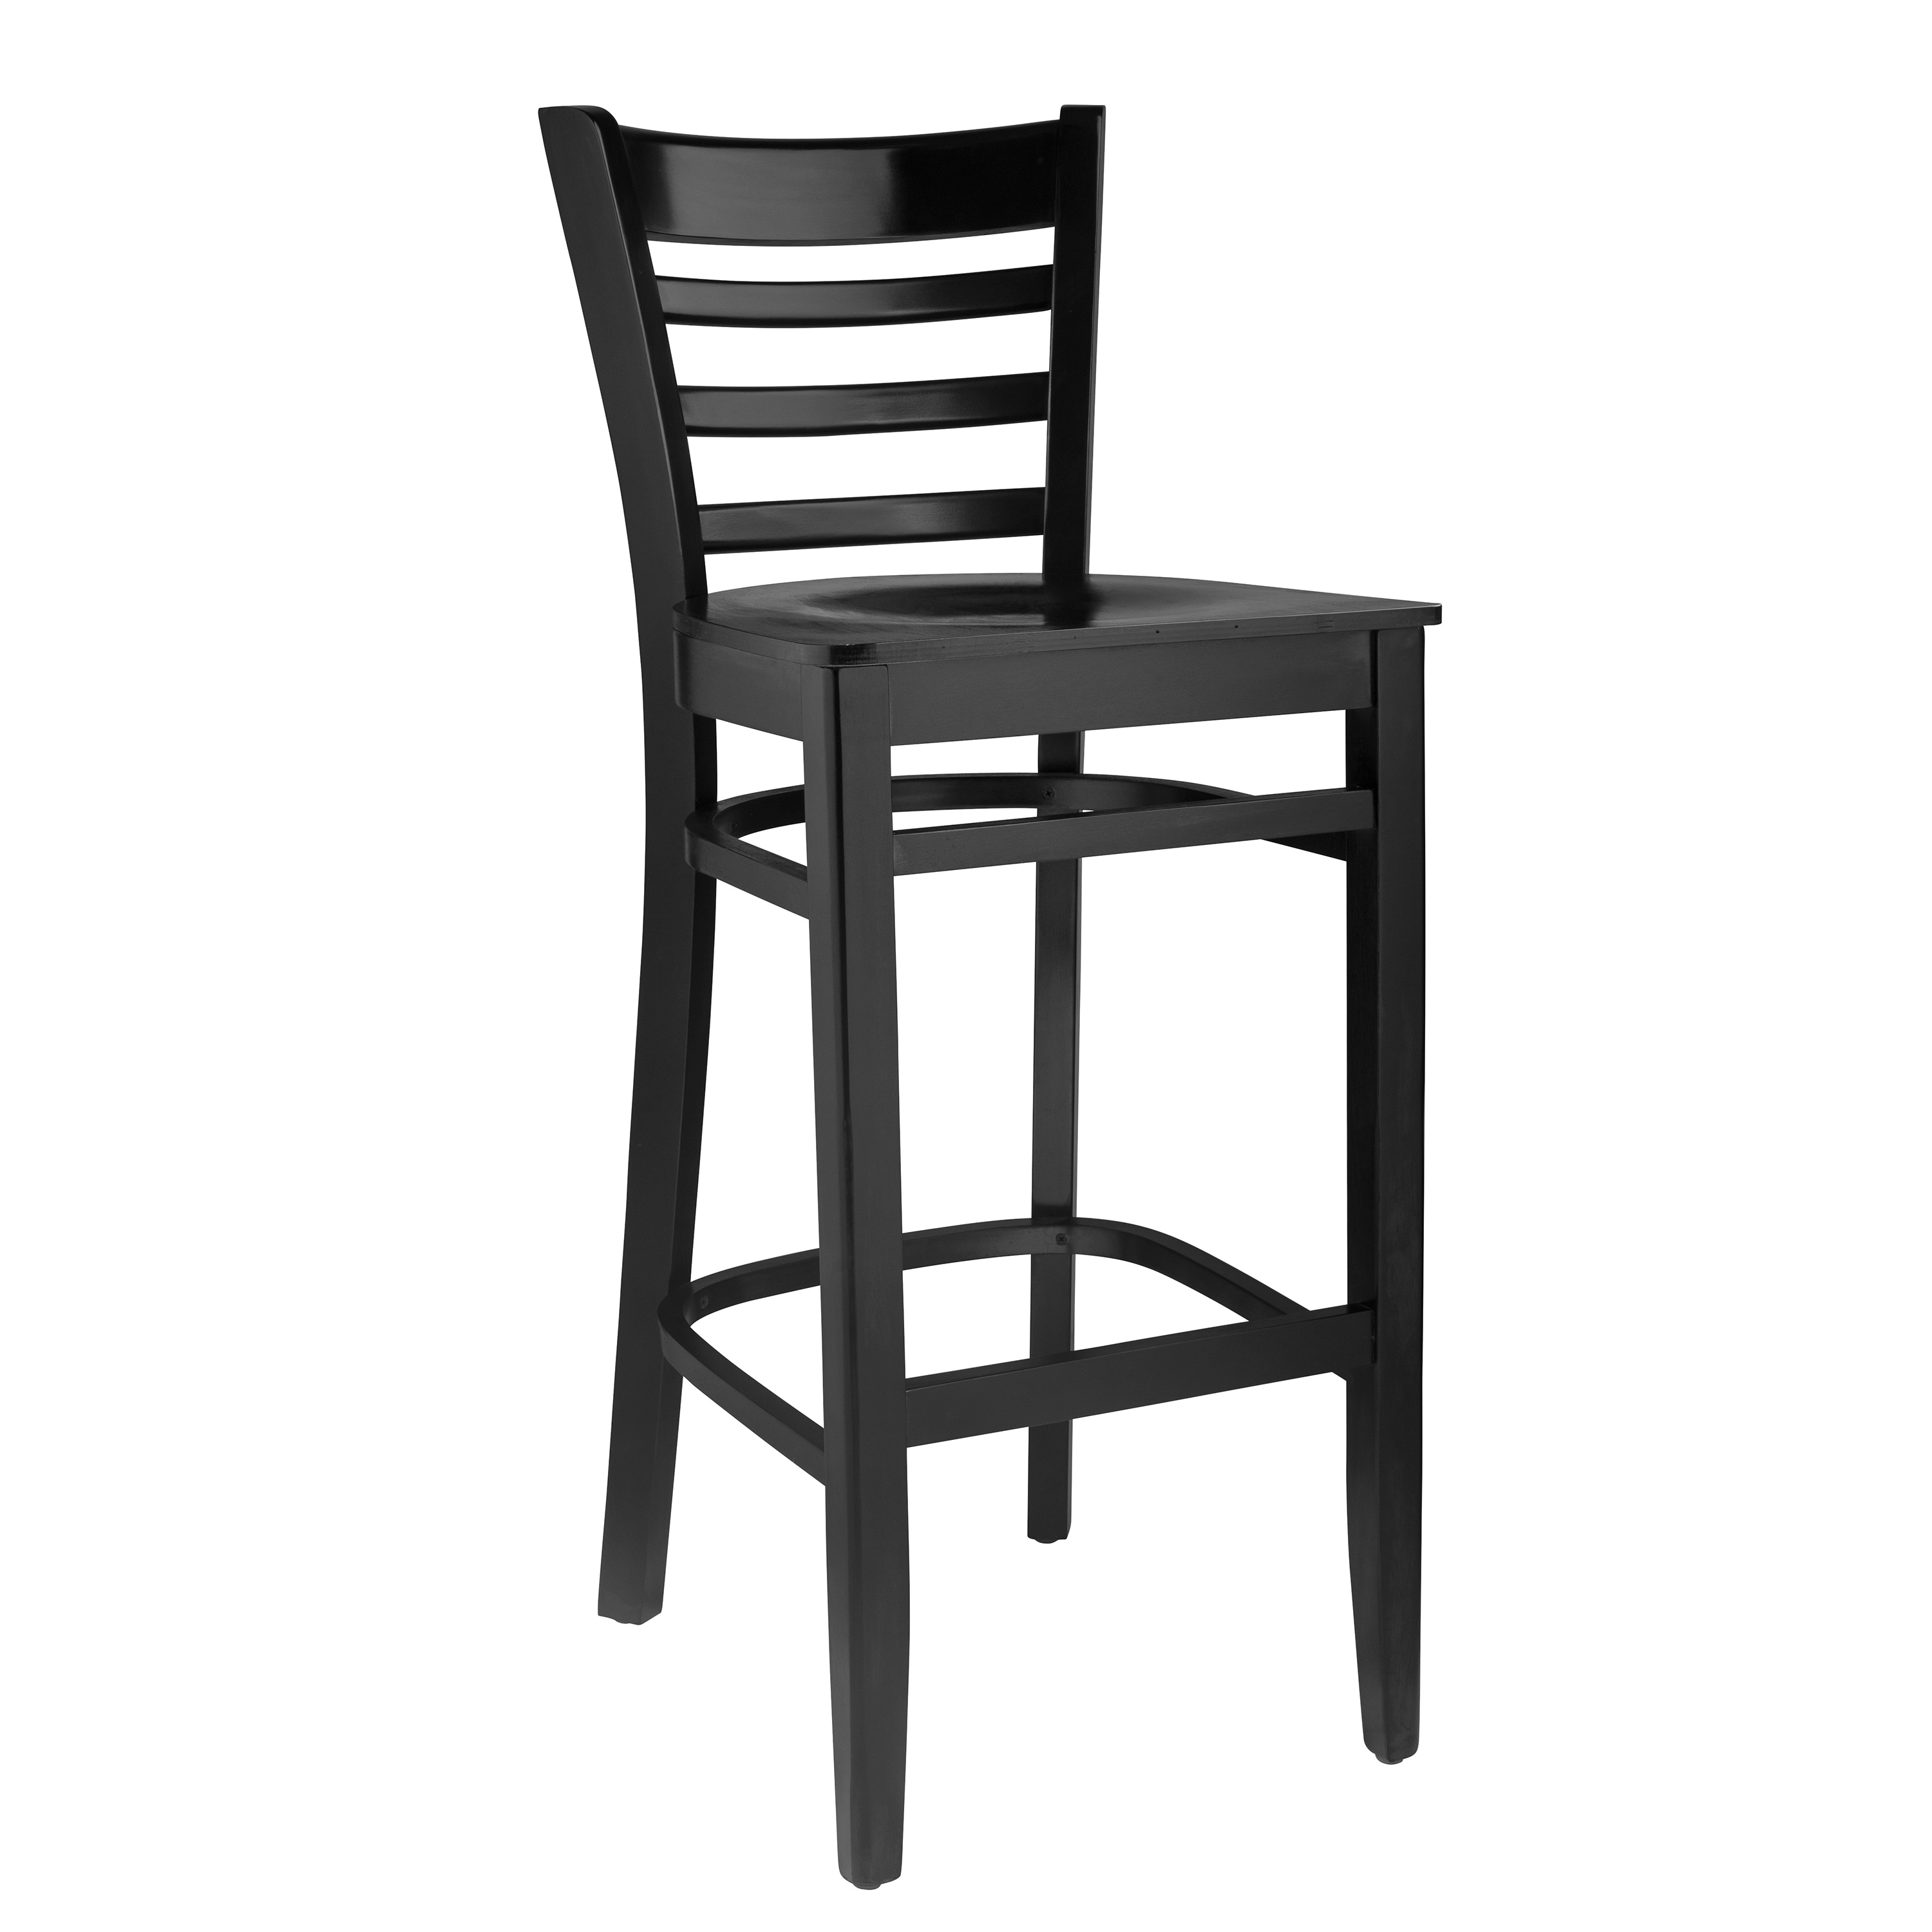 Cheap Stools Buy Extra Tall Over 33 In Counter Bar Stools Online At